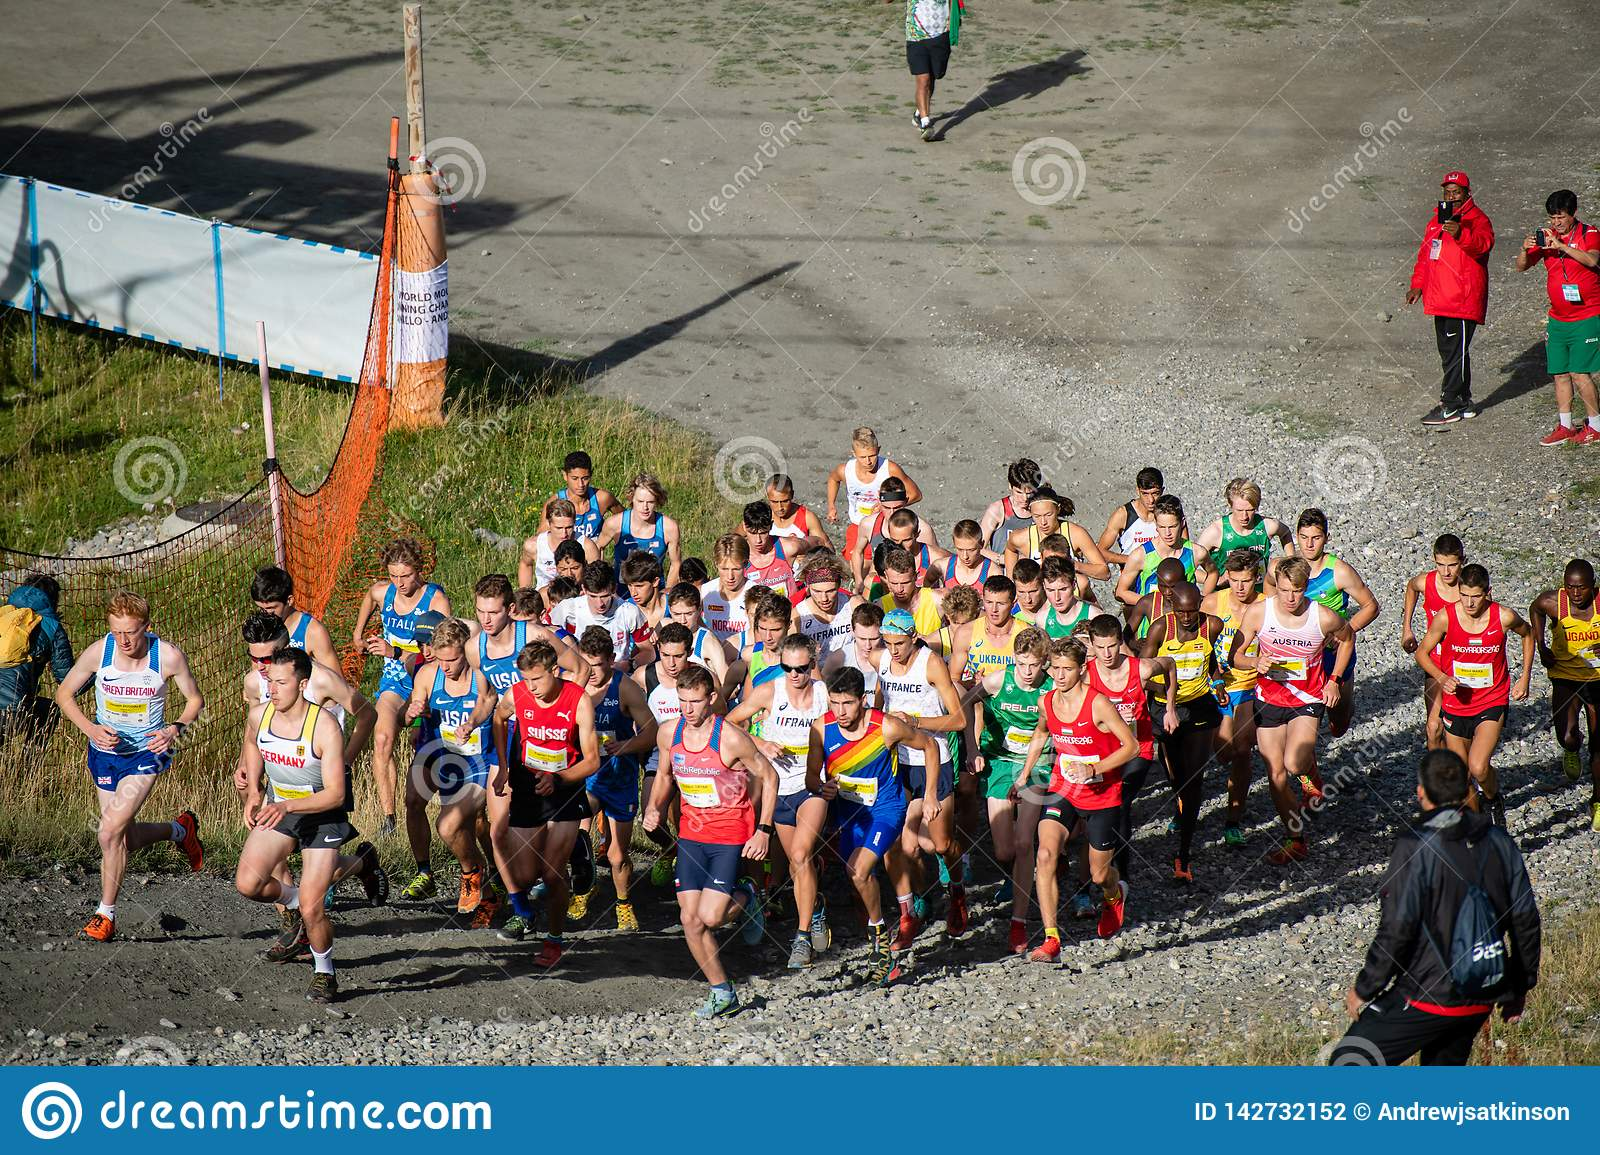 Runners up the first hill in the World Mountain Running Championships Race